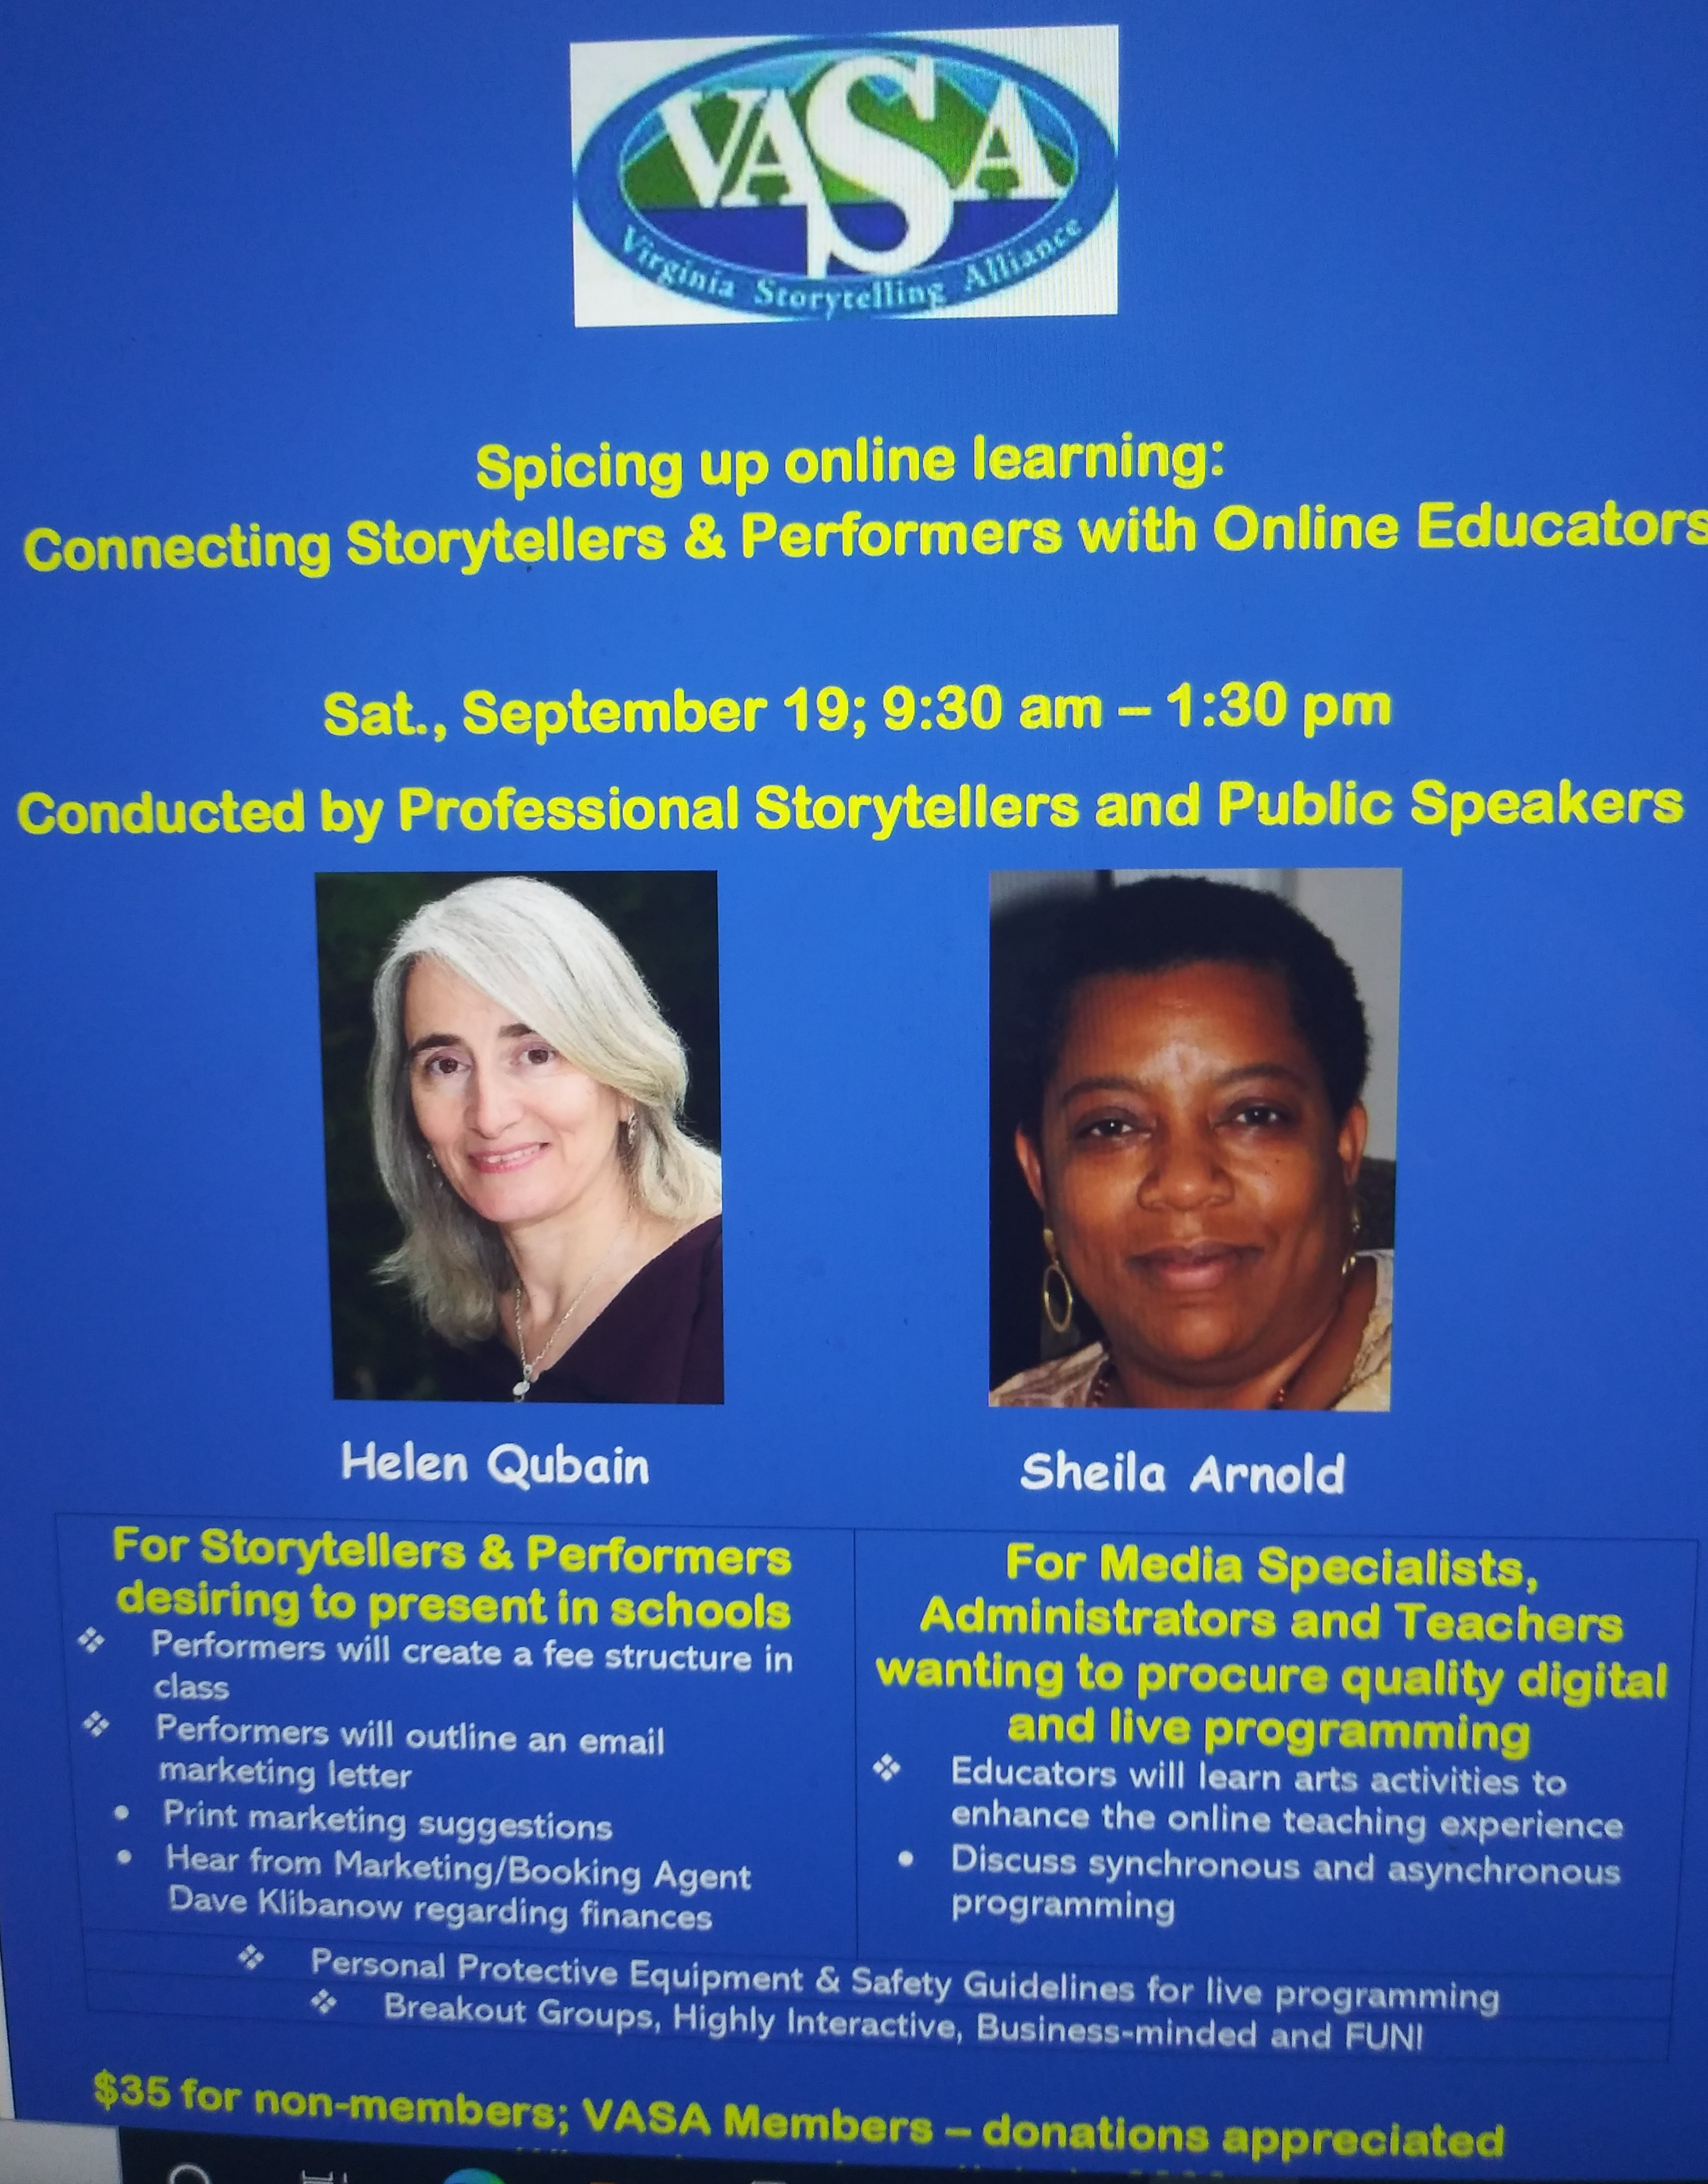 Spicing up online learning:  Connecting Storytellers & Performers with Online Educators